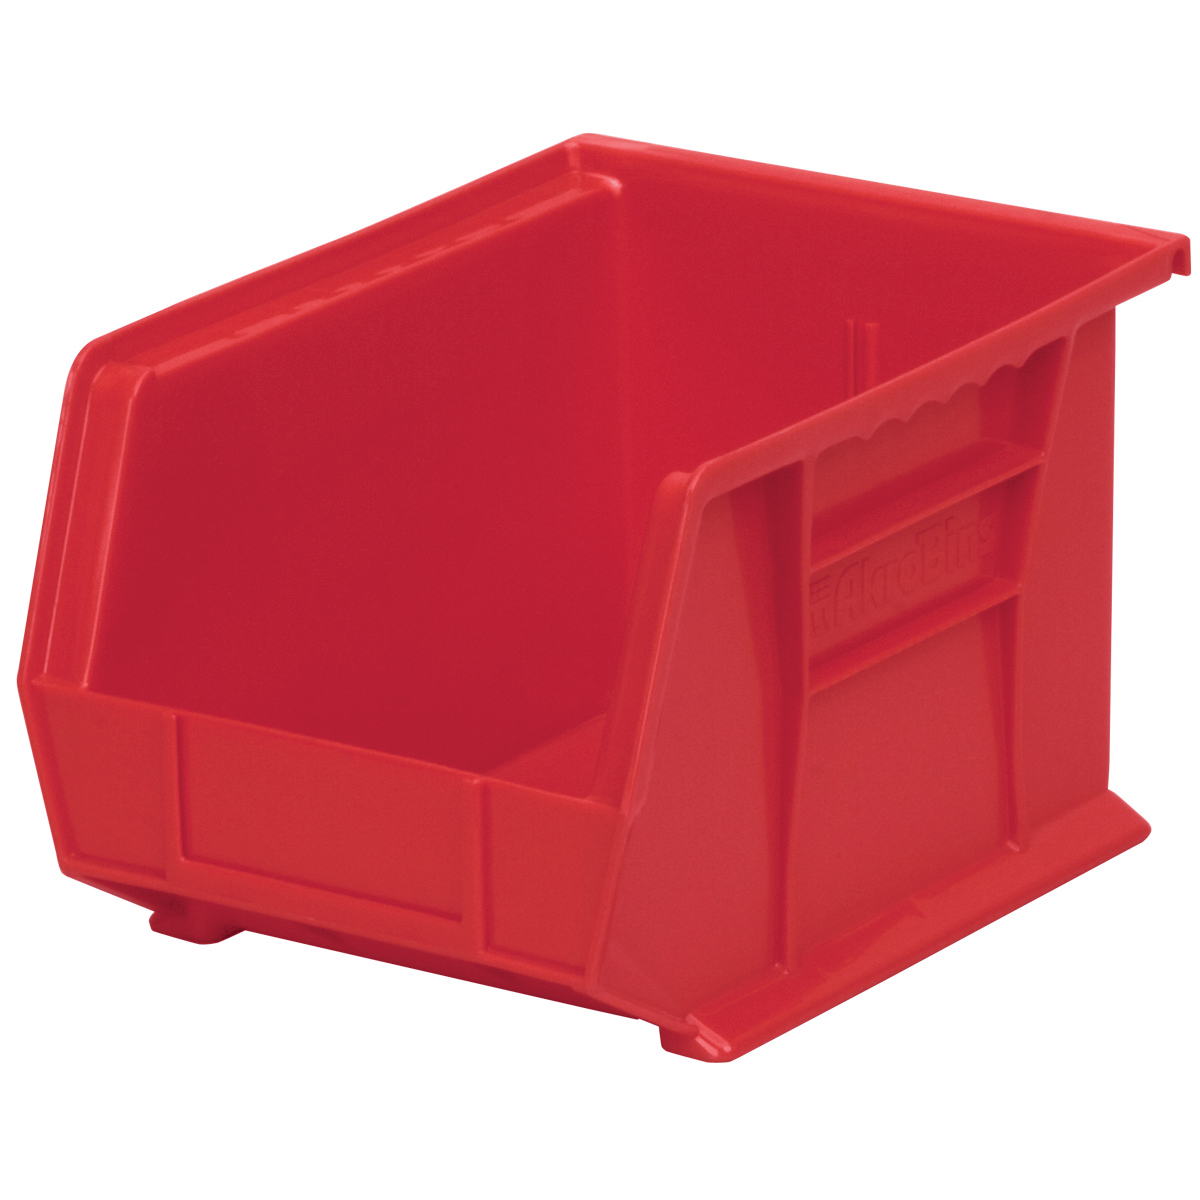 AkroBin 10-3/4 x 8-1/4 x 7, Red (30239RED).  This item sold in carton quantities of 6.